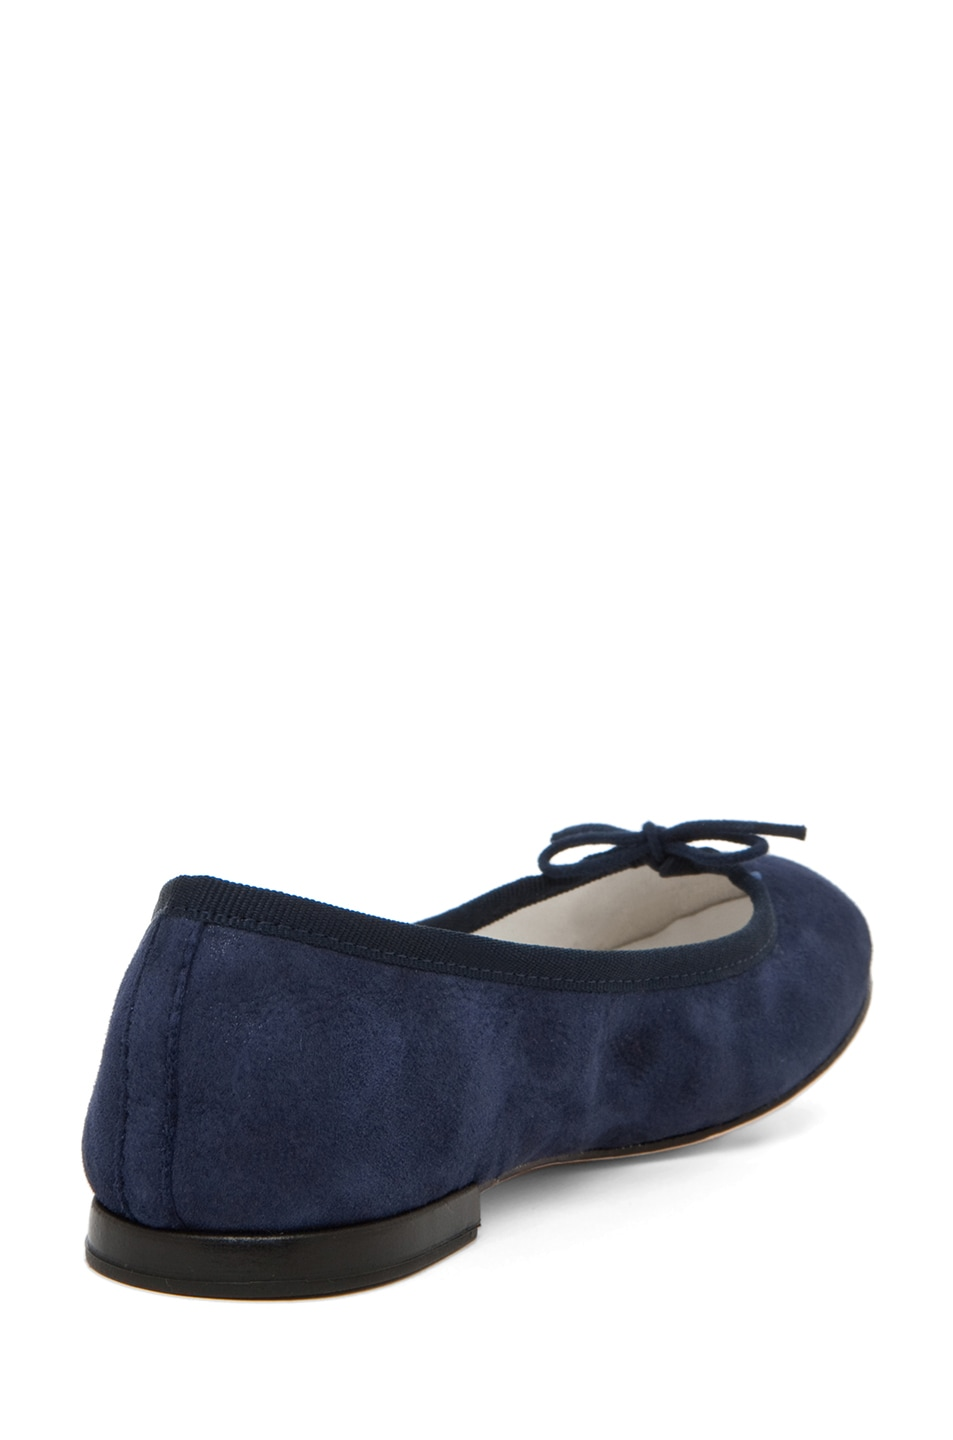 Image 3 of Repetto Suede Flat in Navy